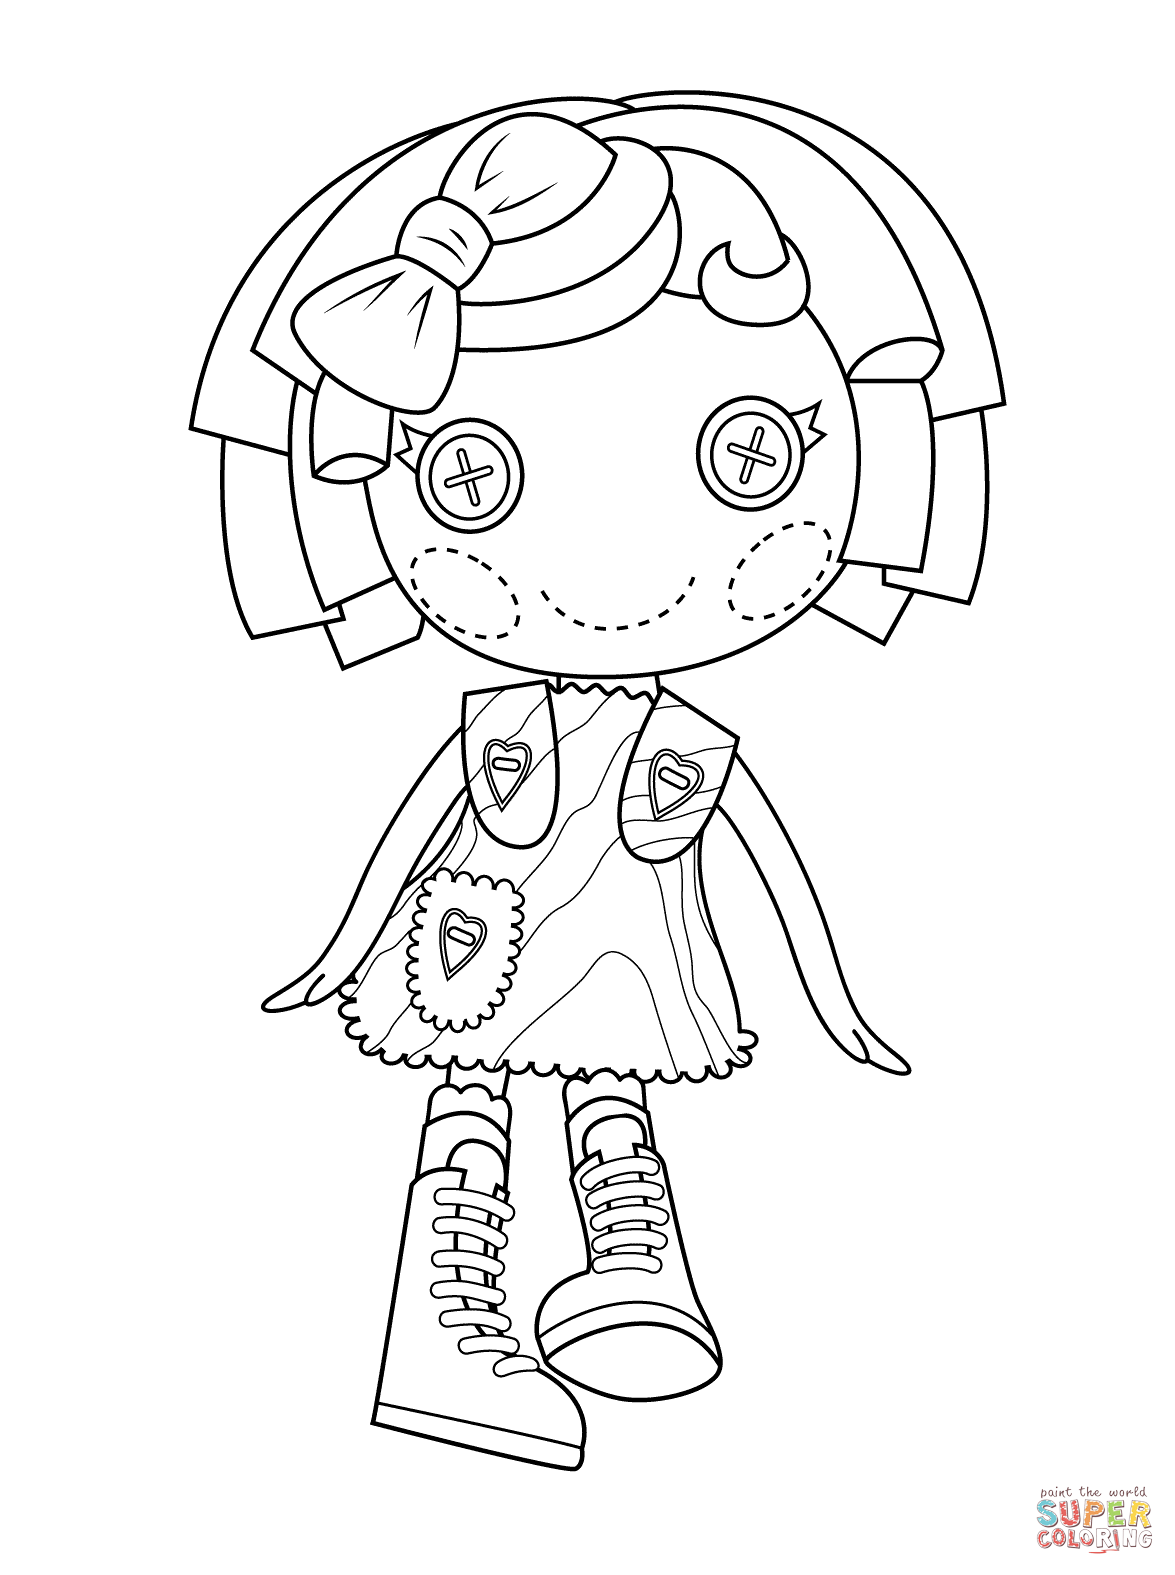 Lalaloopsy Pillow Featherbed Coloring Page Free Printable